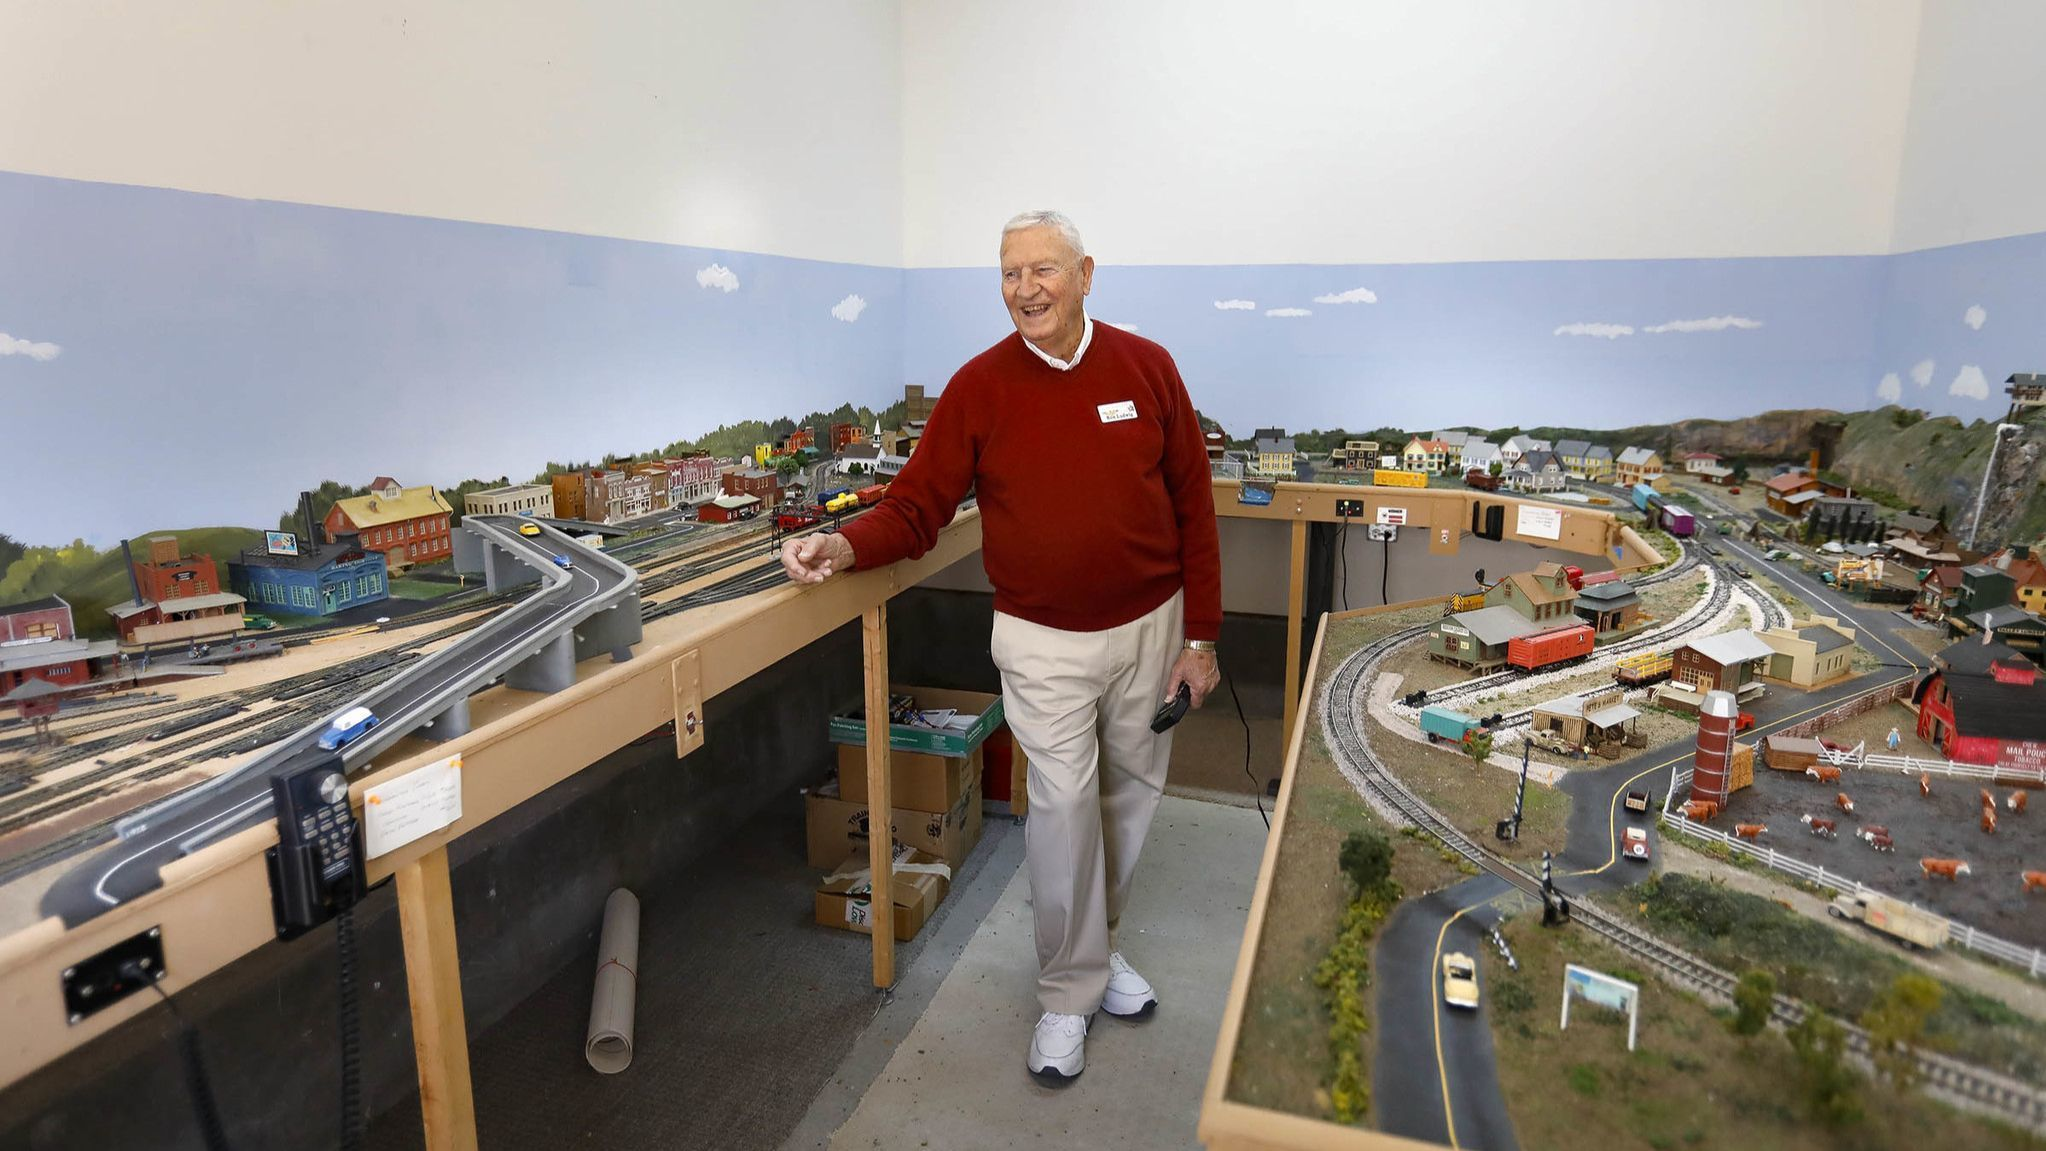 Carlsbad's 'train man' adds new holiday layout to mini railroad empire